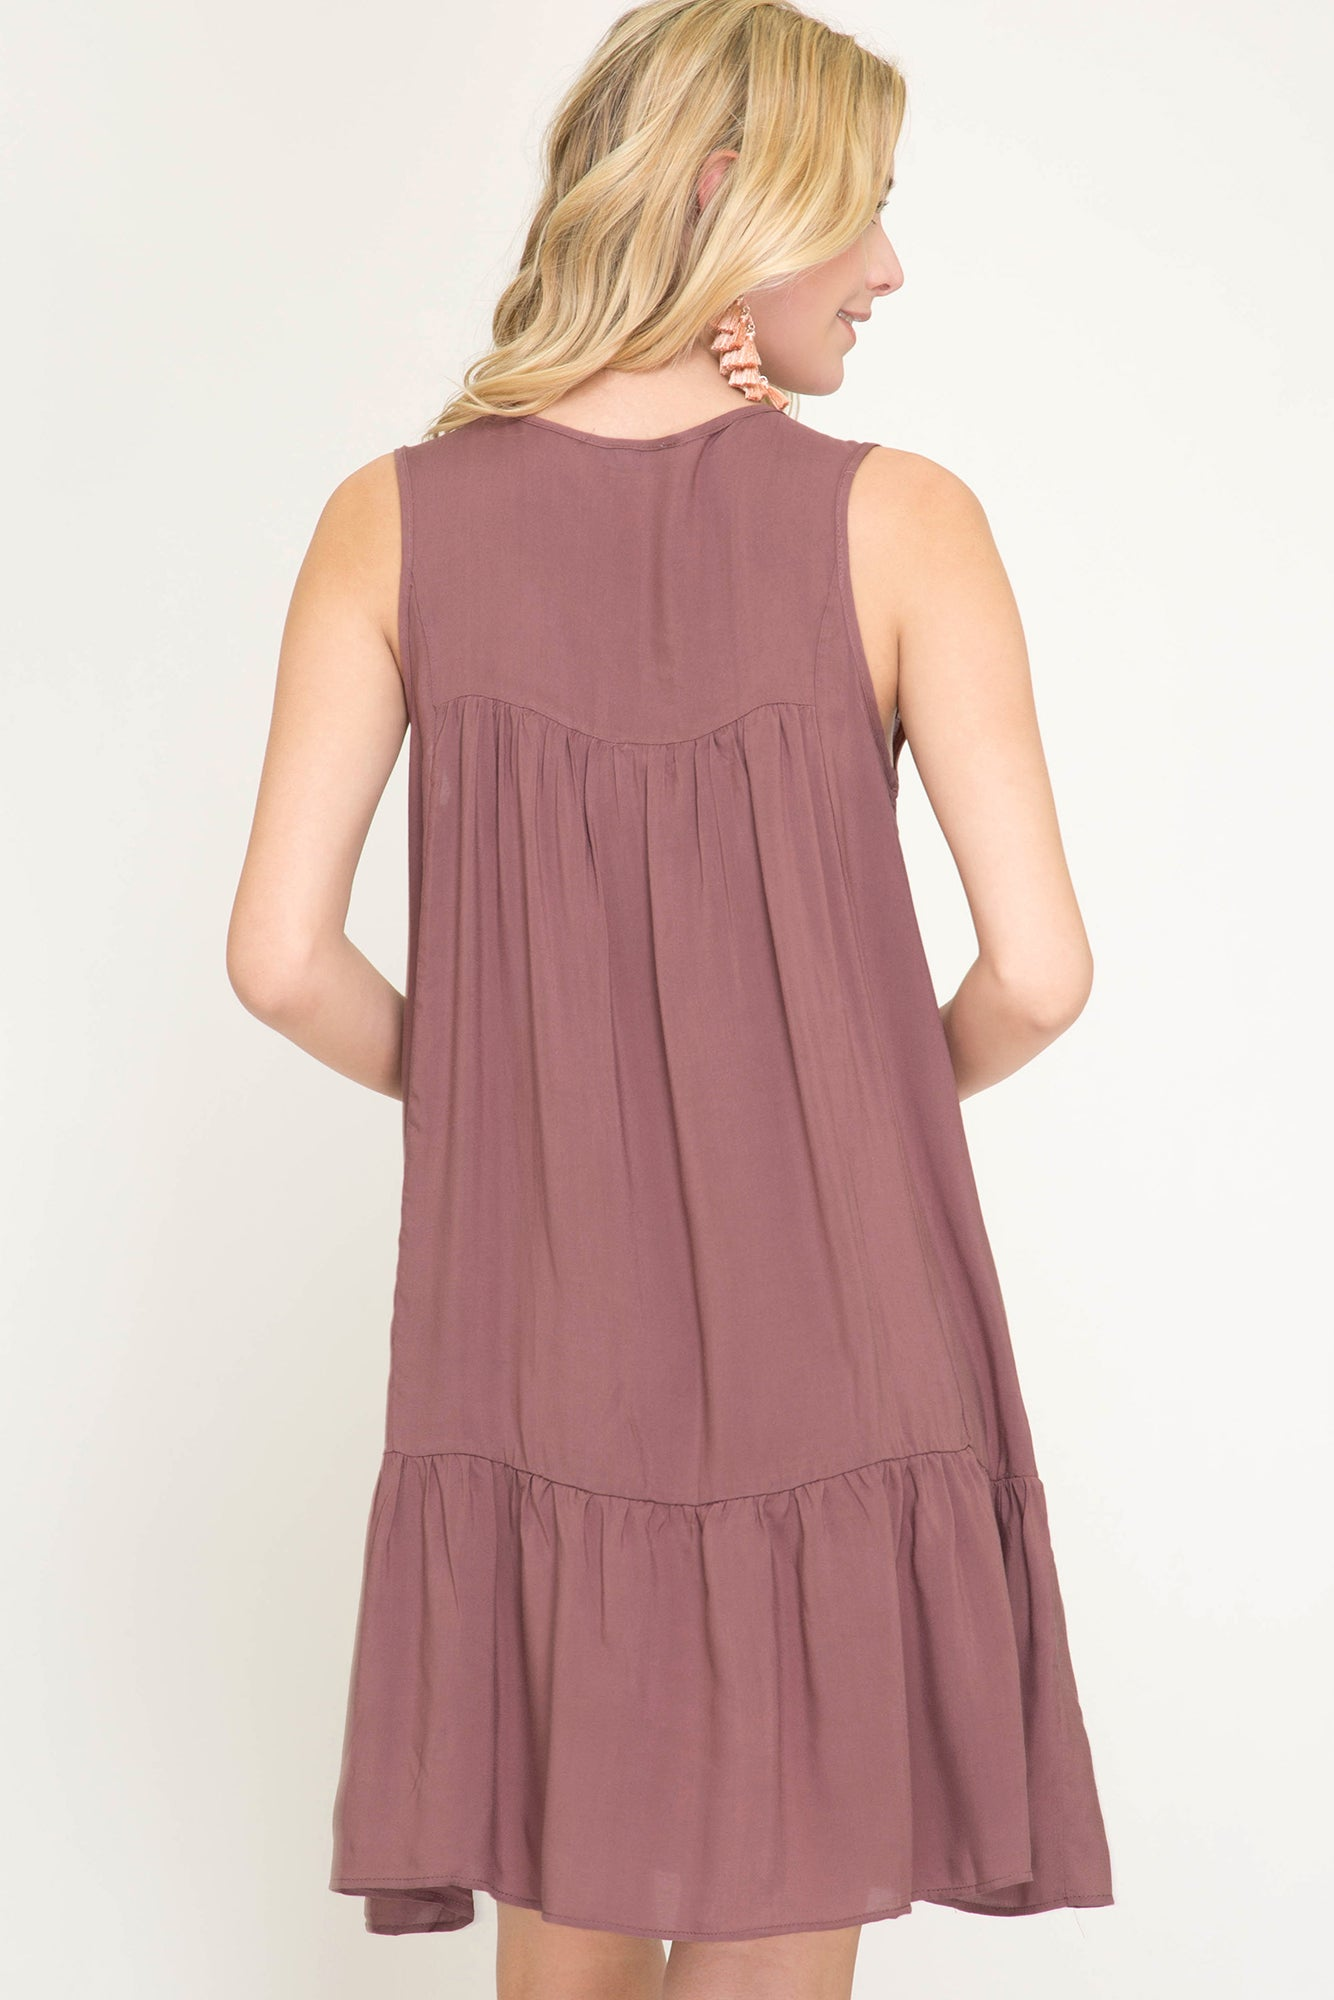 Mauve Sleeveless Embroidery Dress with Lace & Tassel Details, S-L